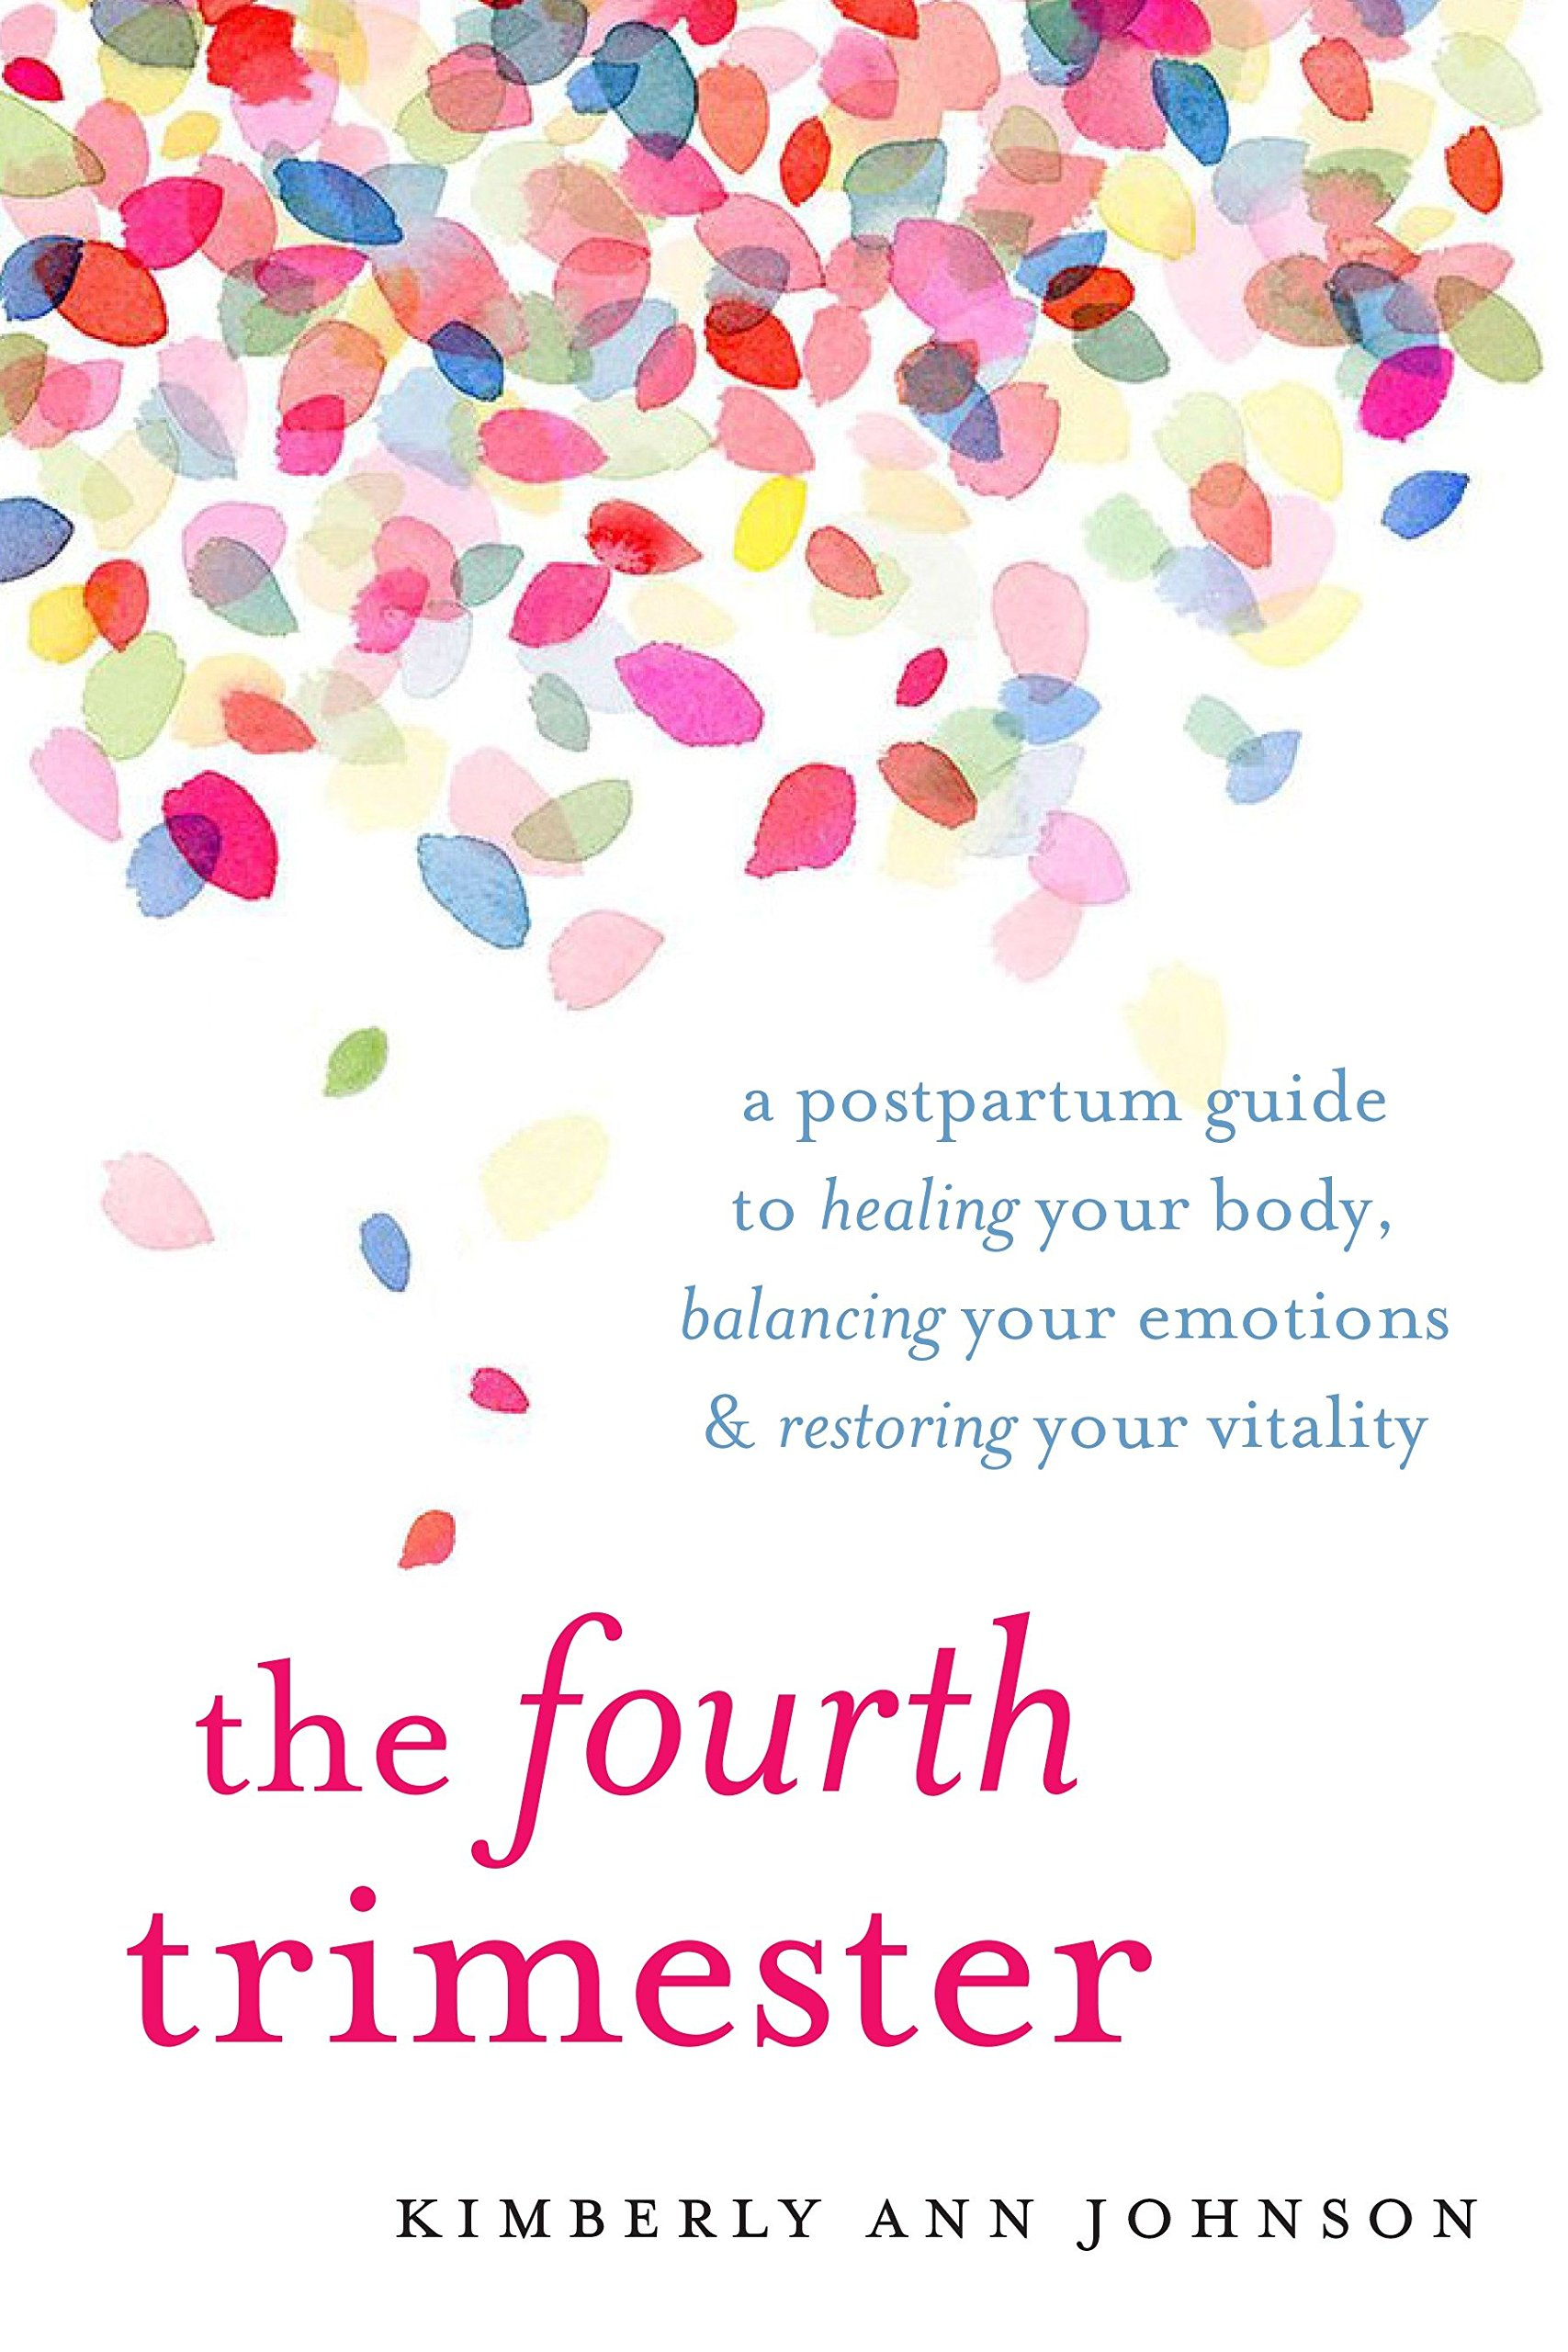 The Fourth Trimester: A Postpartum Guide to Healing Your Body, Balancing Your Emotions, and Restoring Your Vitality by Shambhala